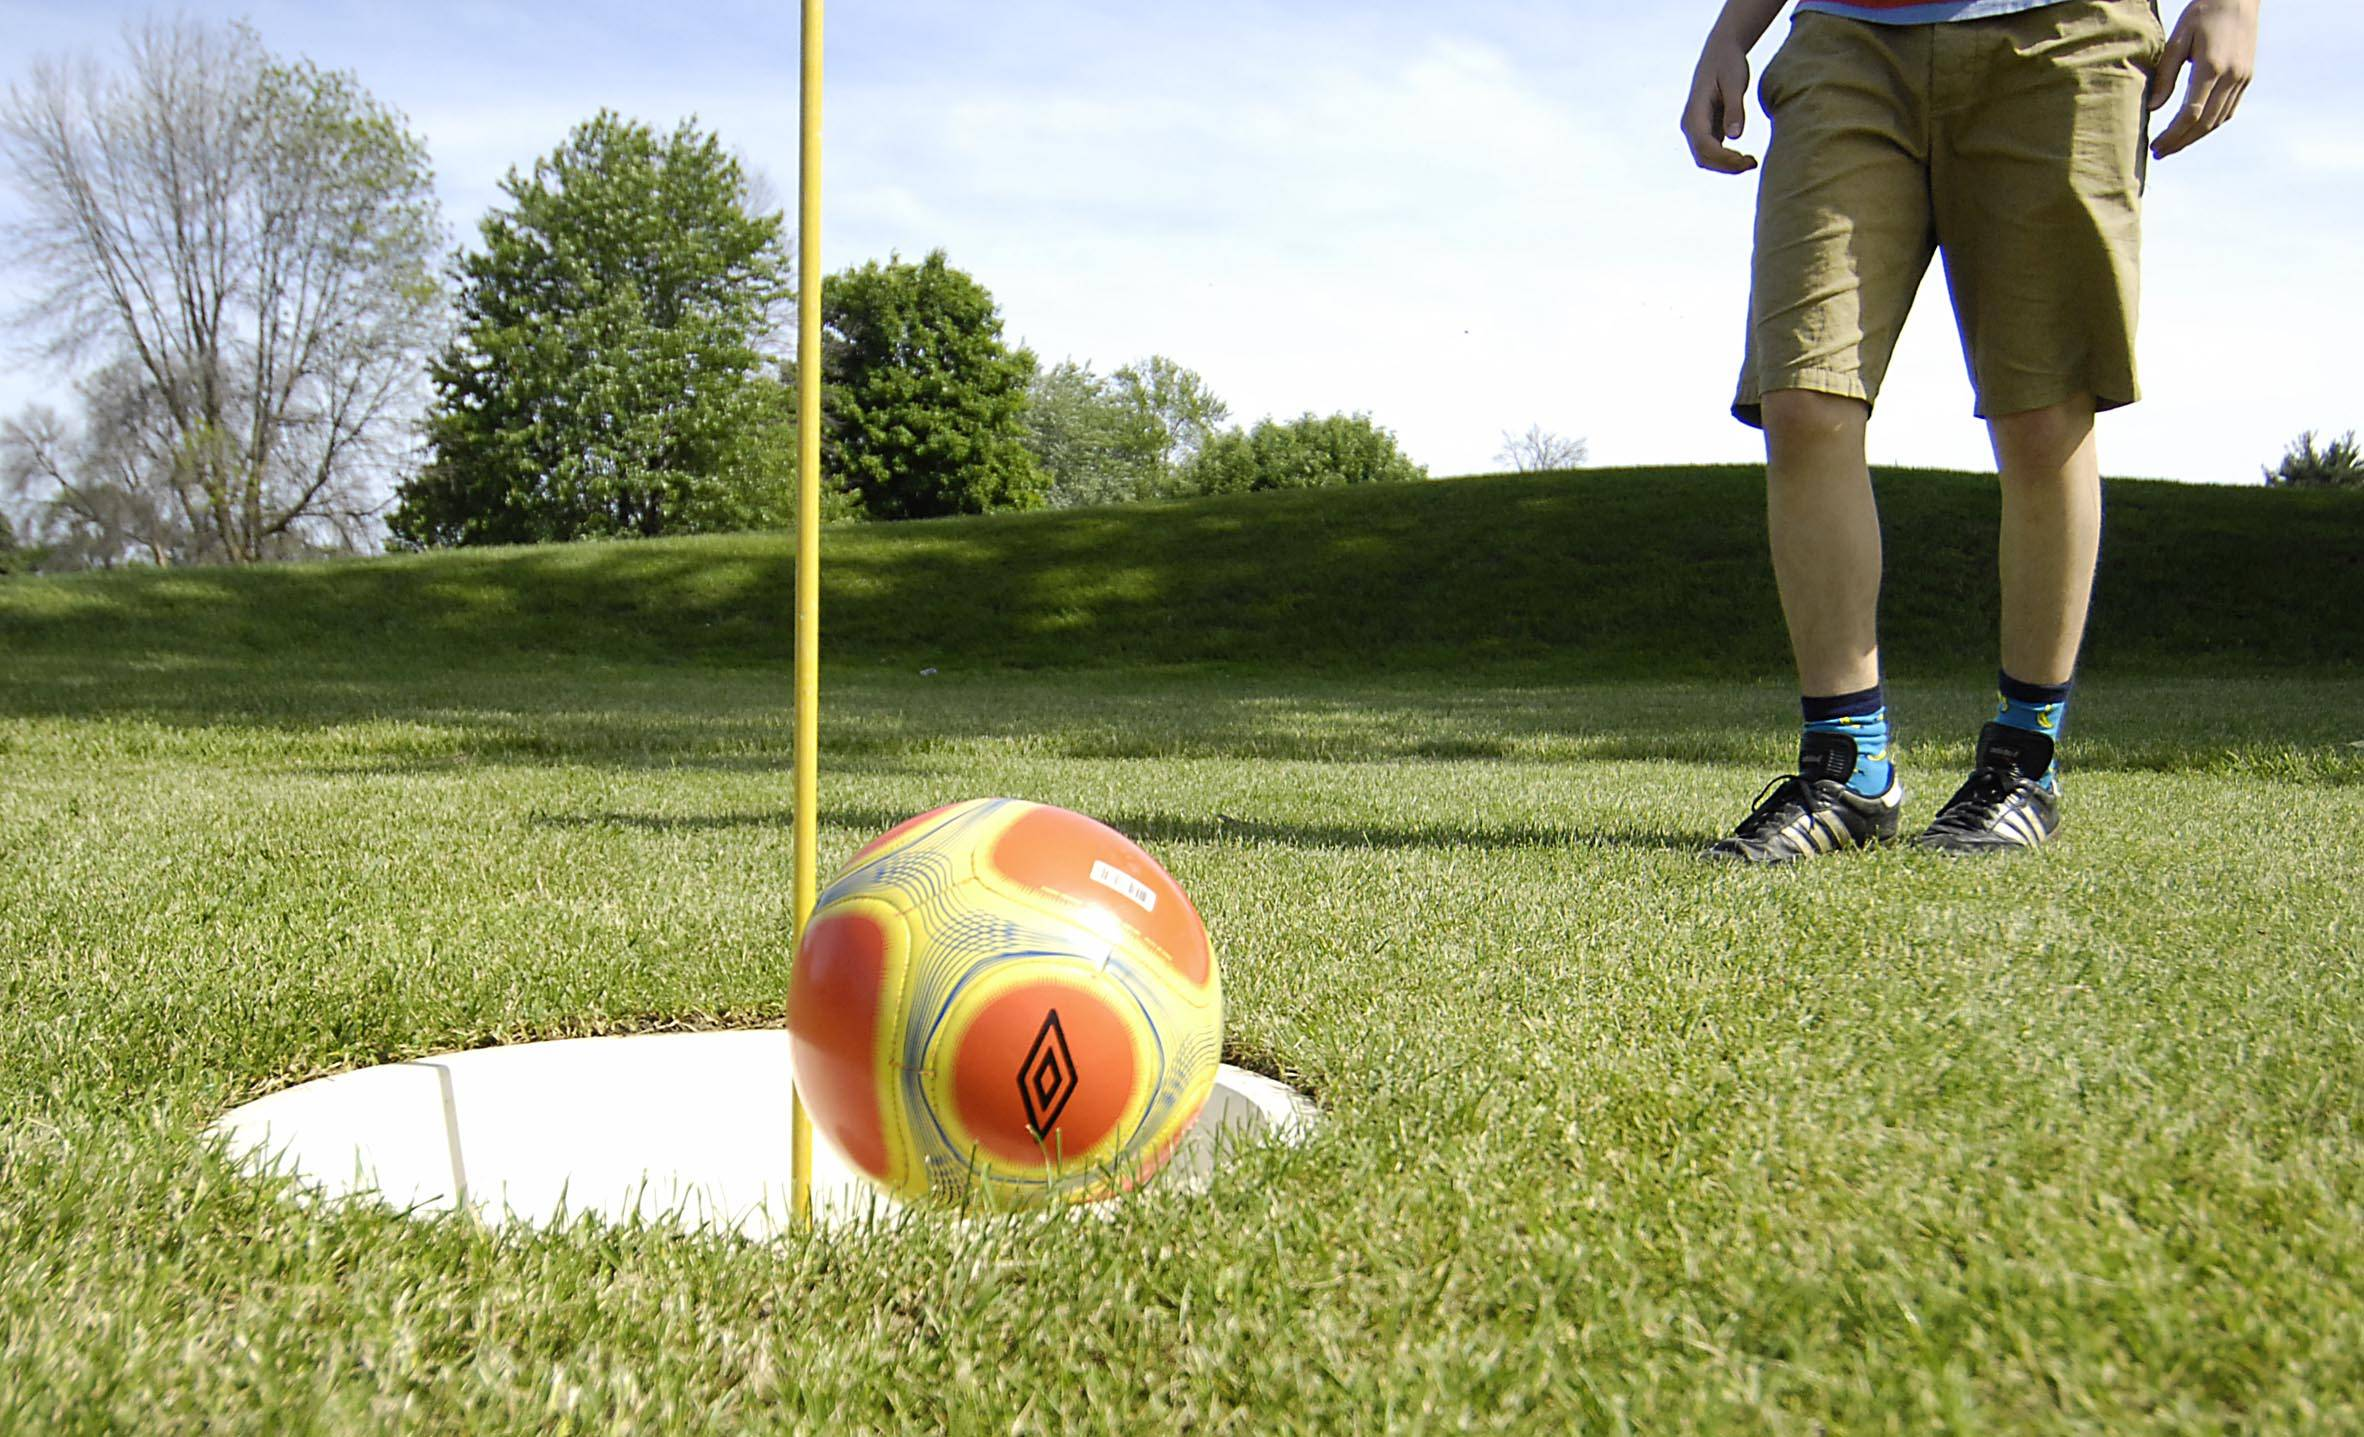 Alex Lenski, 16, of Geneva, rims his soccer ball around the 20-inch cup as he plays FootGolf at Bonnie Dundee Golf Club.